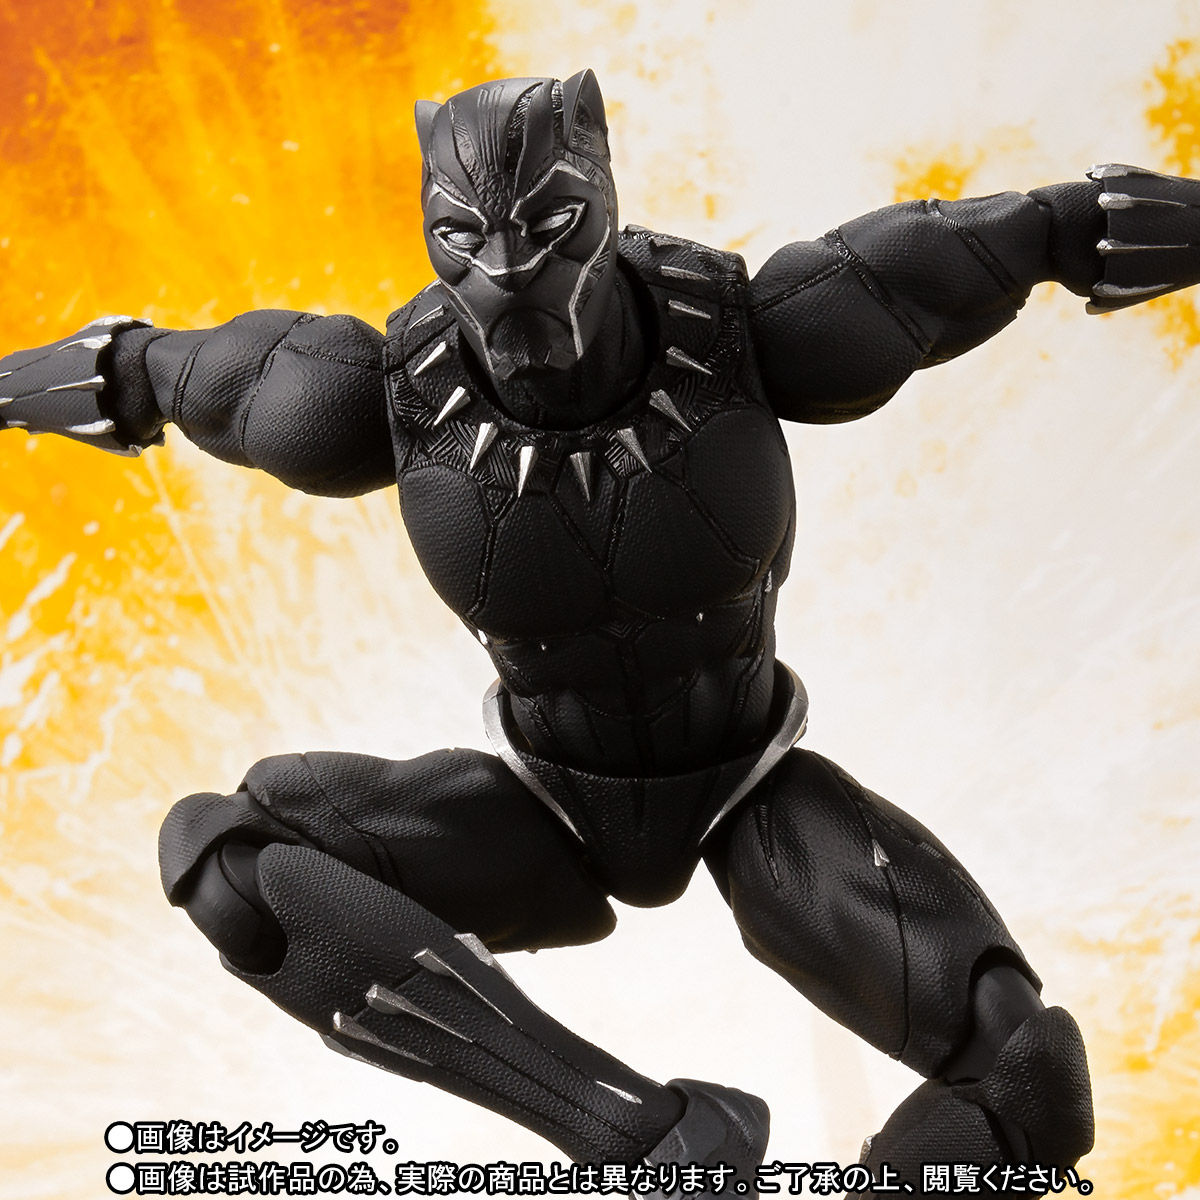 S.H Figuarts Black Panther (Avengers: Infinity War) (Limited Pre-order)